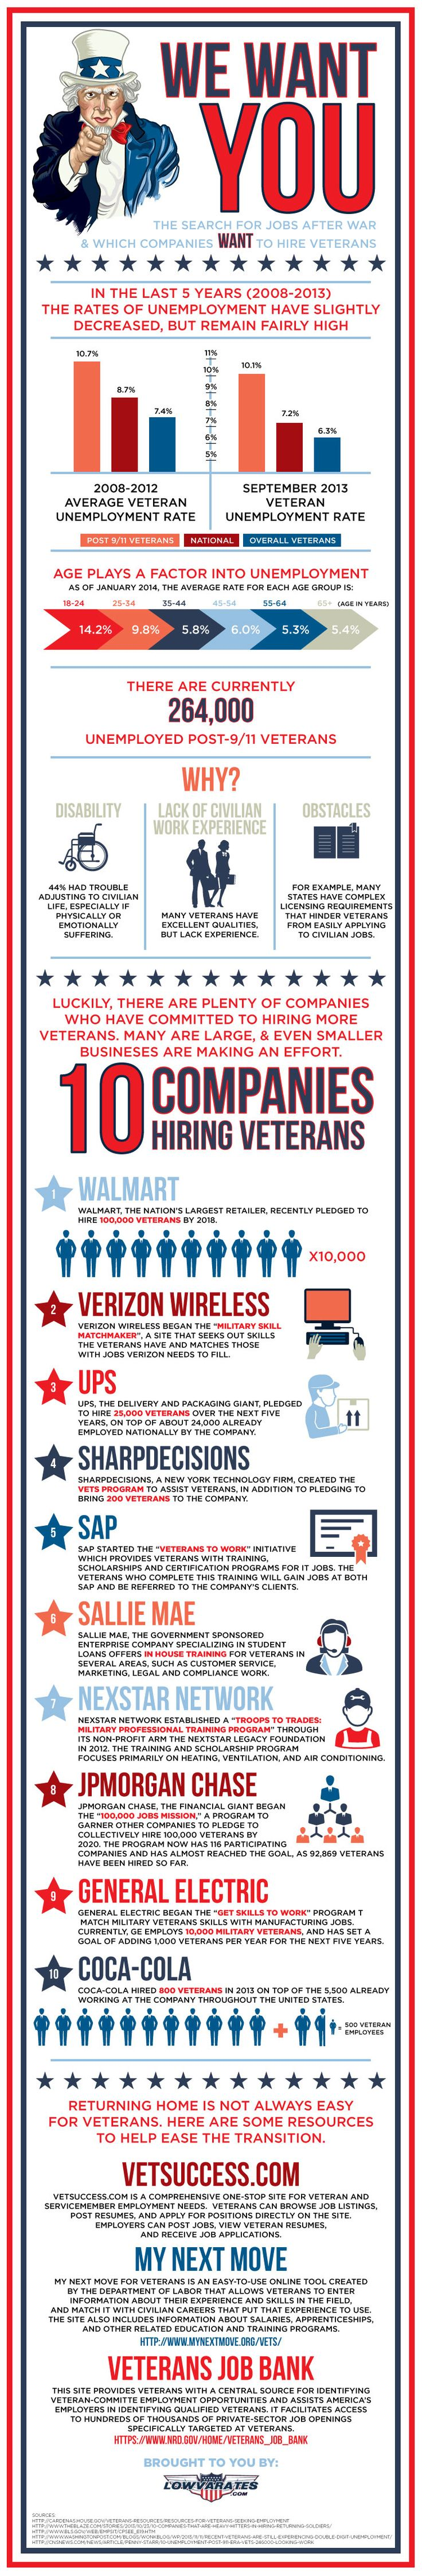 best ideas about hiring veterans disabled in the last 5 years the rates of unemployment have slightly decreased but are remaining fairly high there are unemployed veterans that are